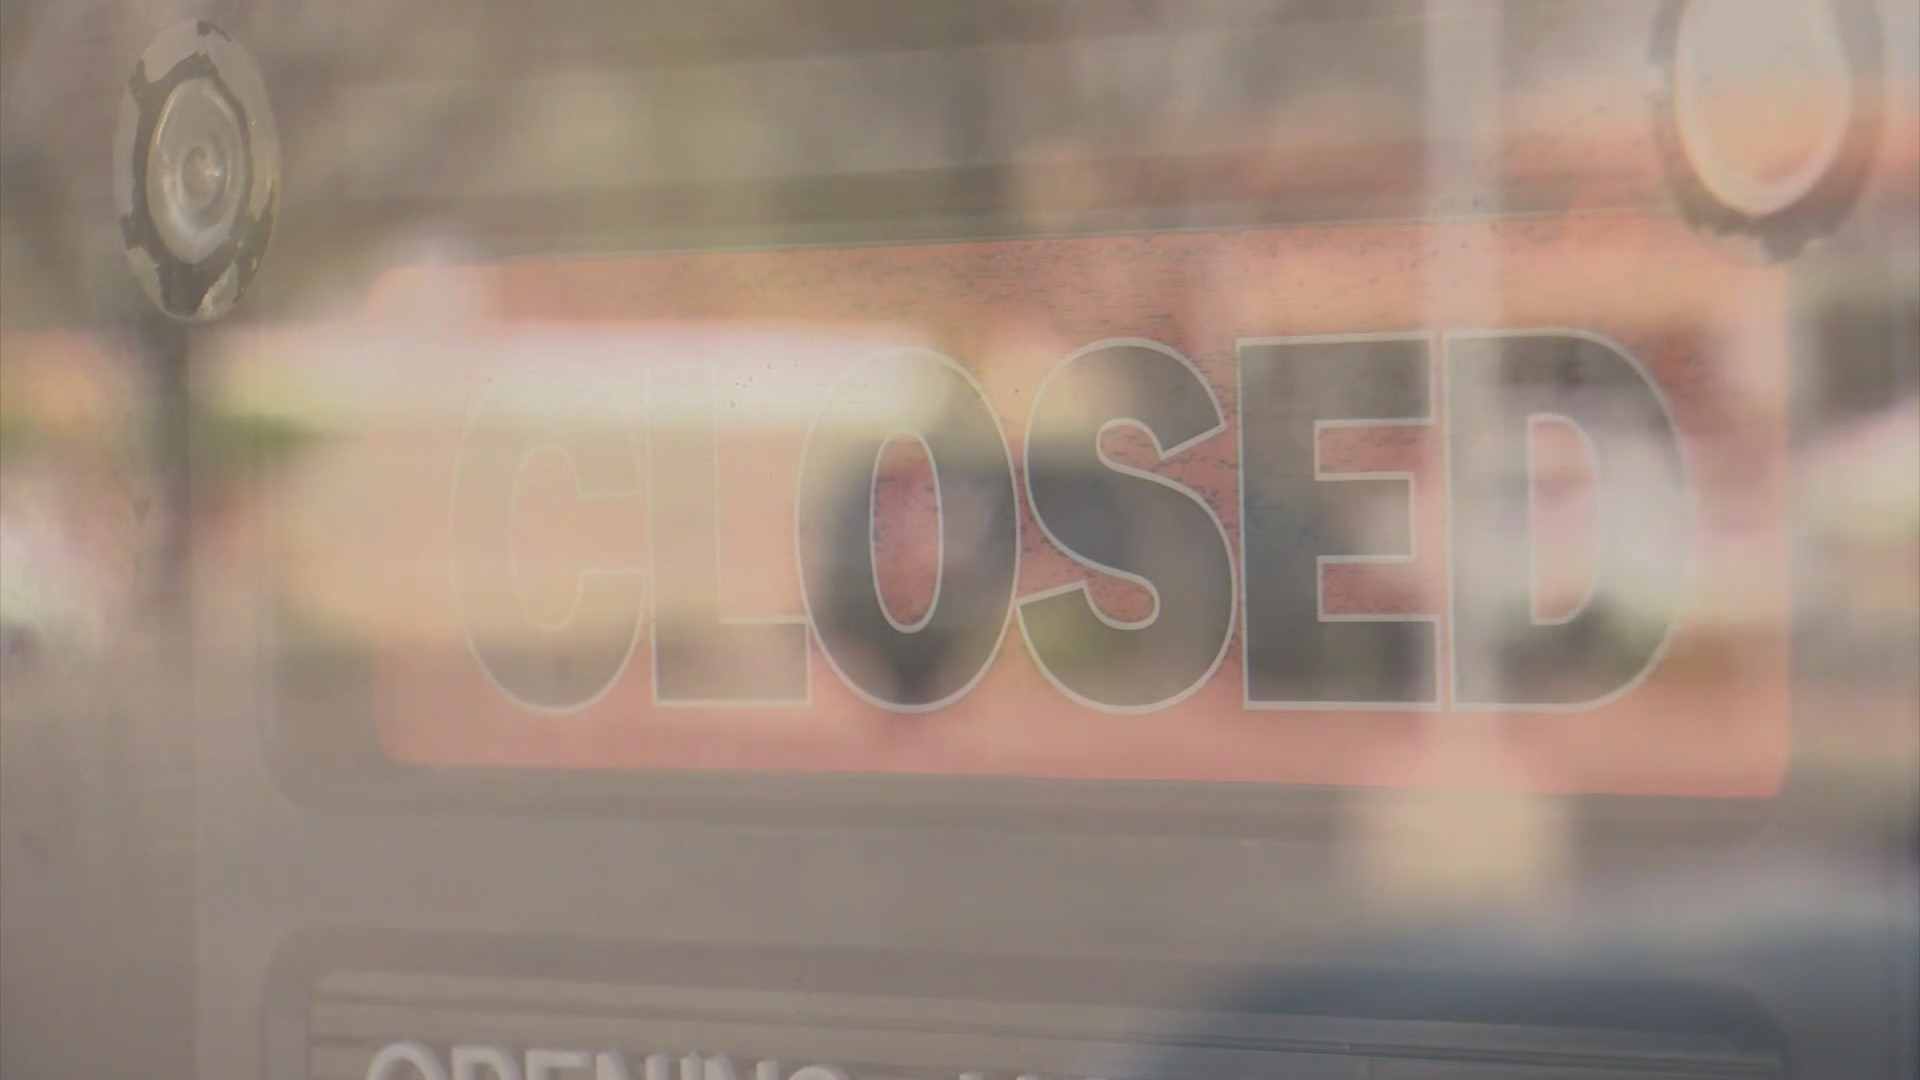 Generic Closed Sign